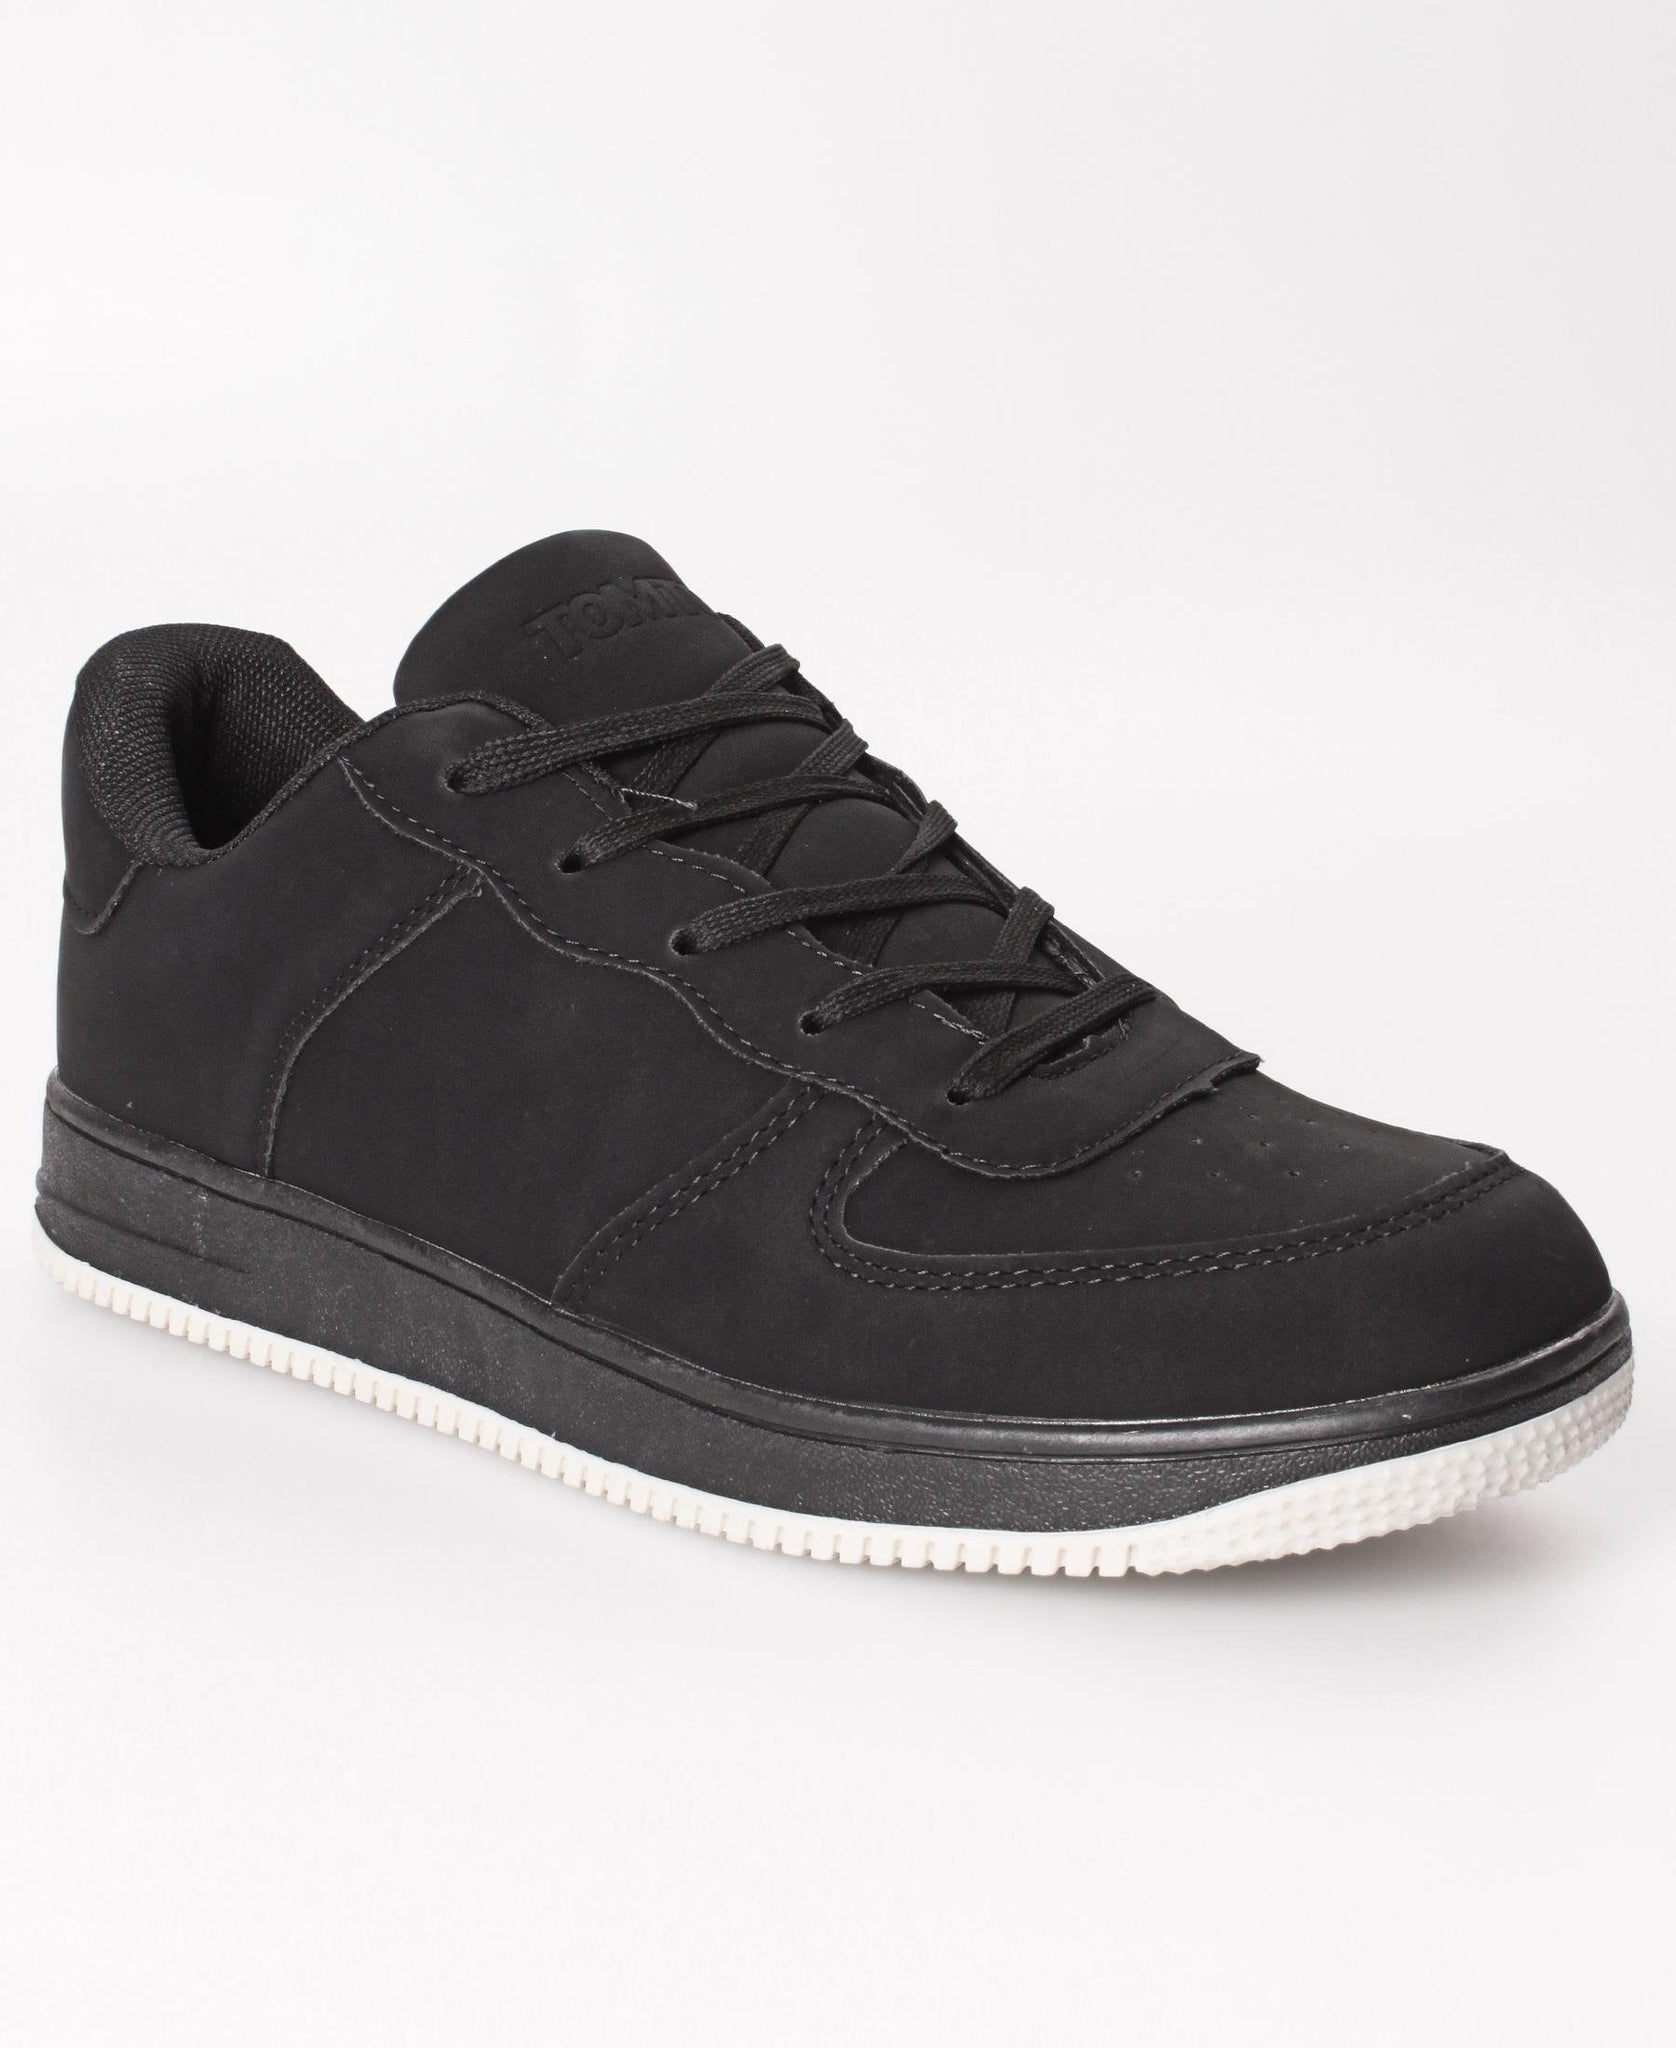 Men's Air Solid Sneakers - Black